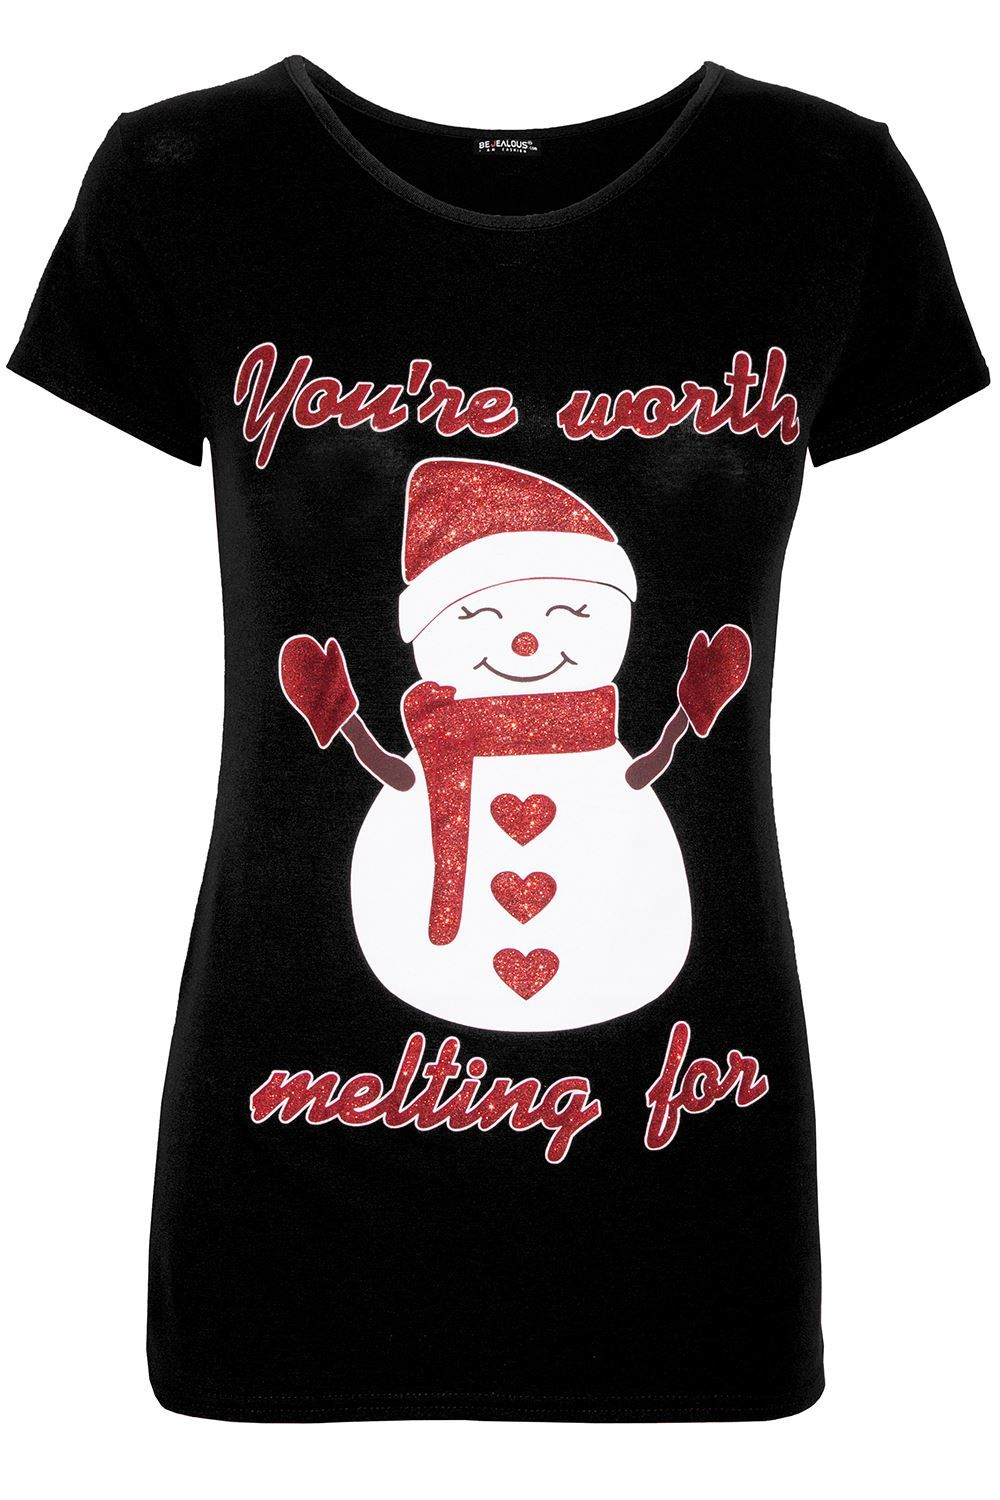 Womens Ladies Christmas Elf Candystick Snowflakes Xmas Stretchy T Shirt Tee Top